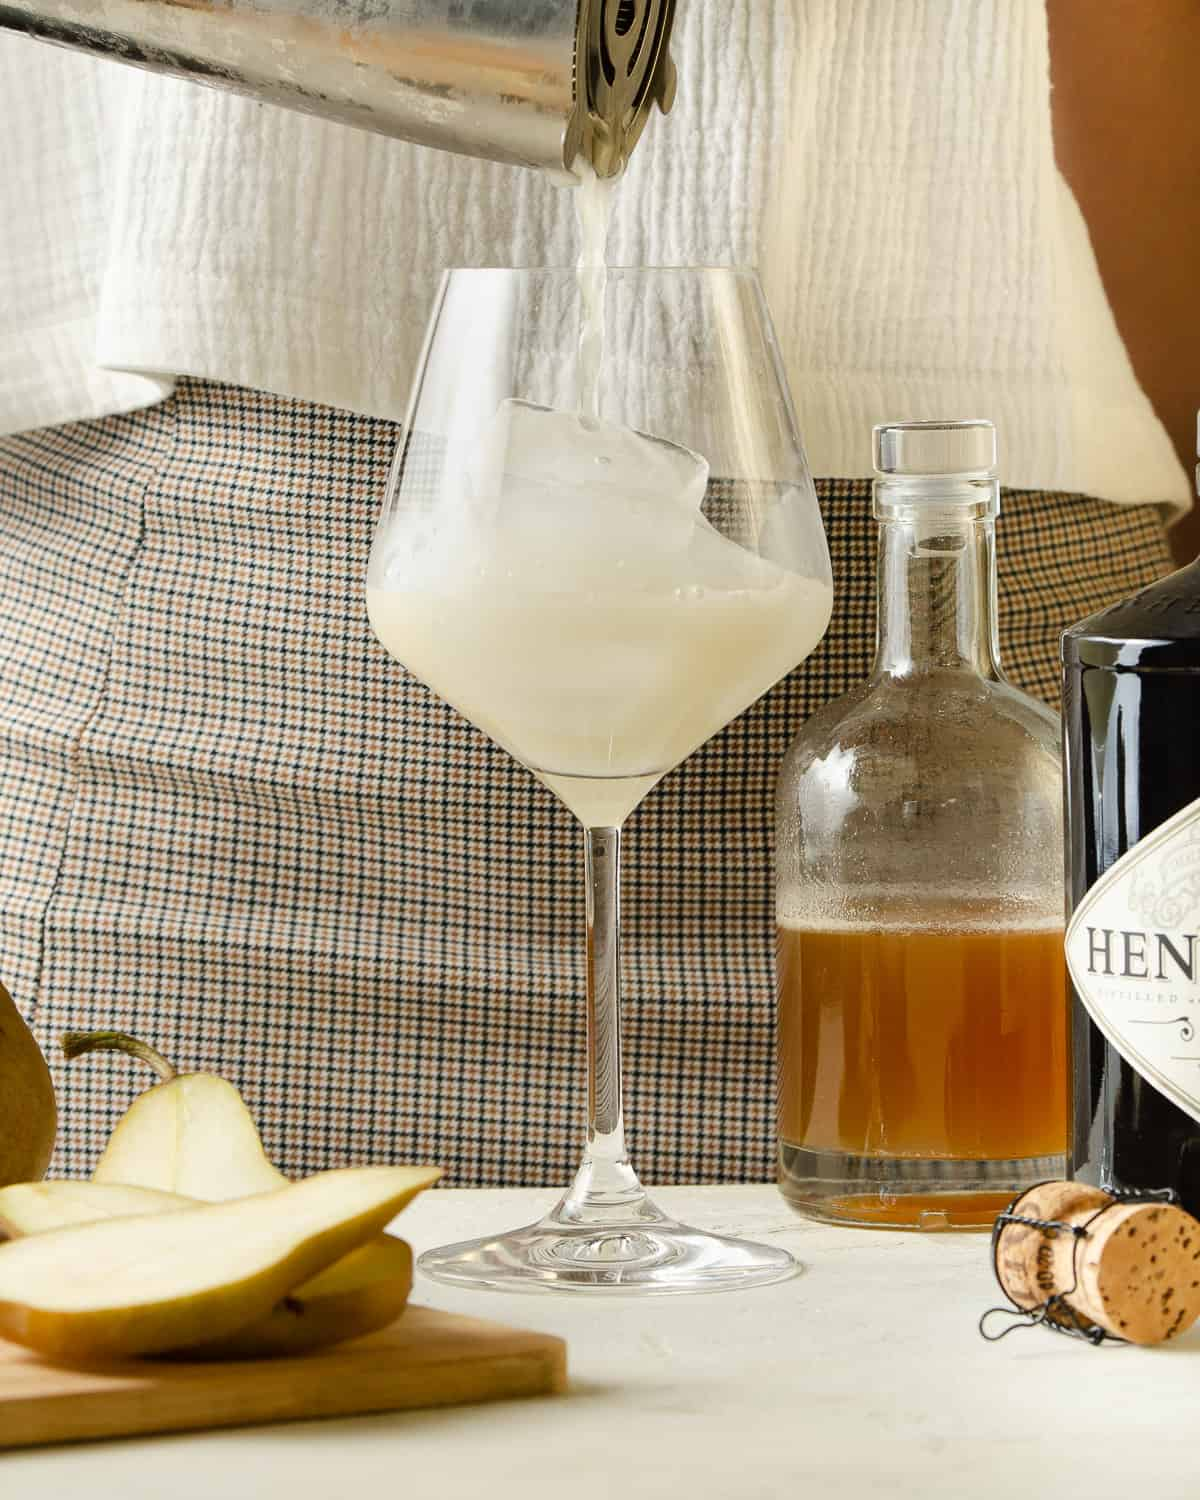 Pouring a ginger gin cocktail from the shaker into a wine glass.